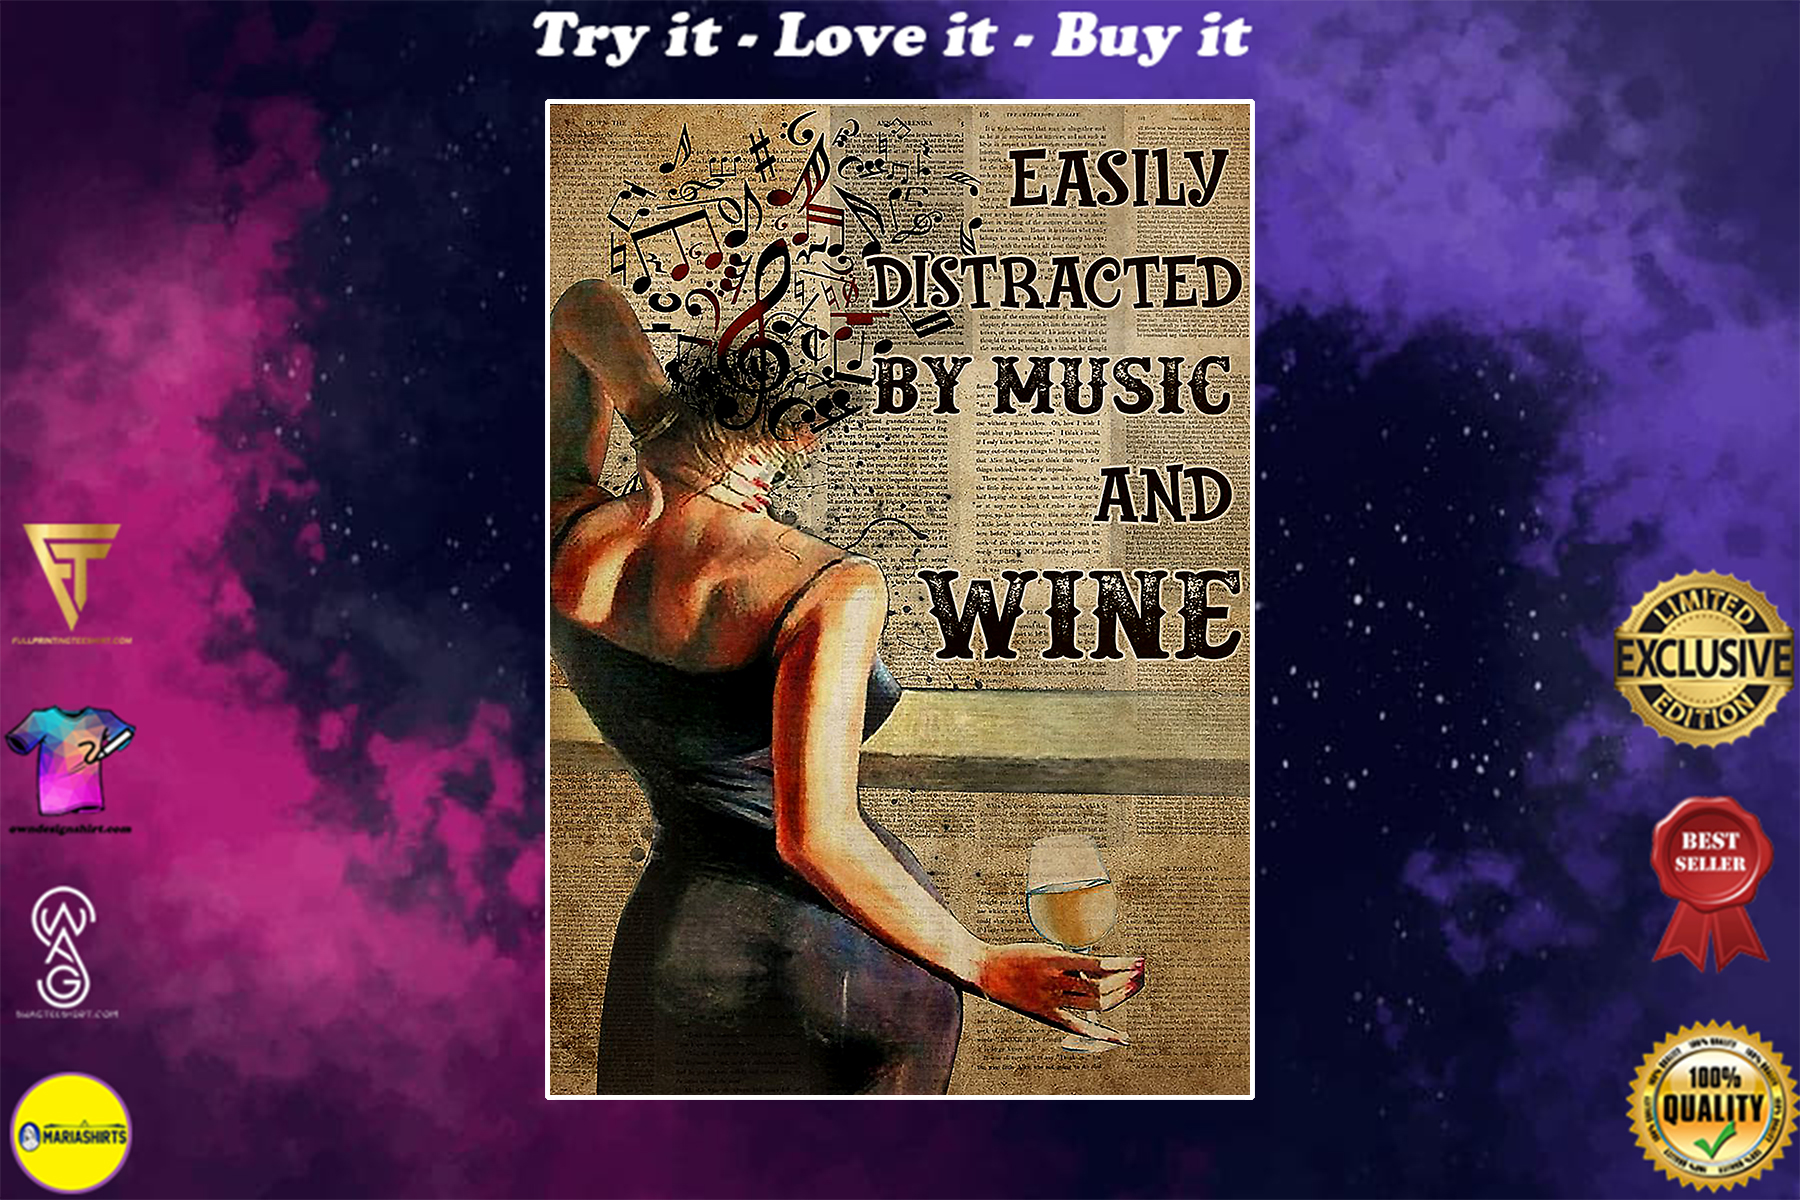 easily distracted by music and white wine book page vintage poster